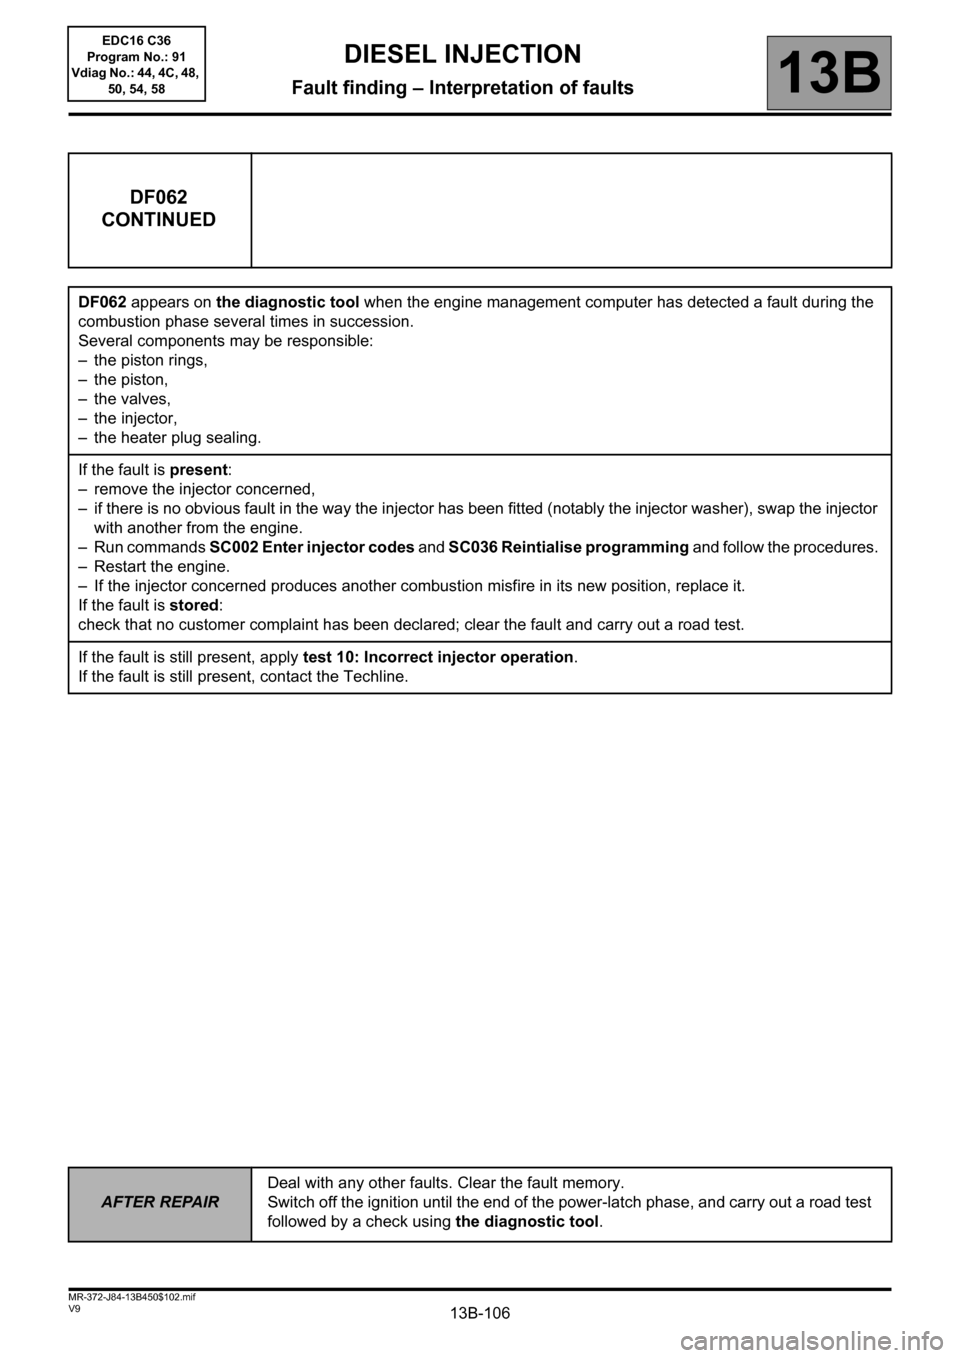 RENAULT SCENIC 2011 J95 / 3.G Engine And Peripherals EDC16C36 Workshop Manual, Page 106